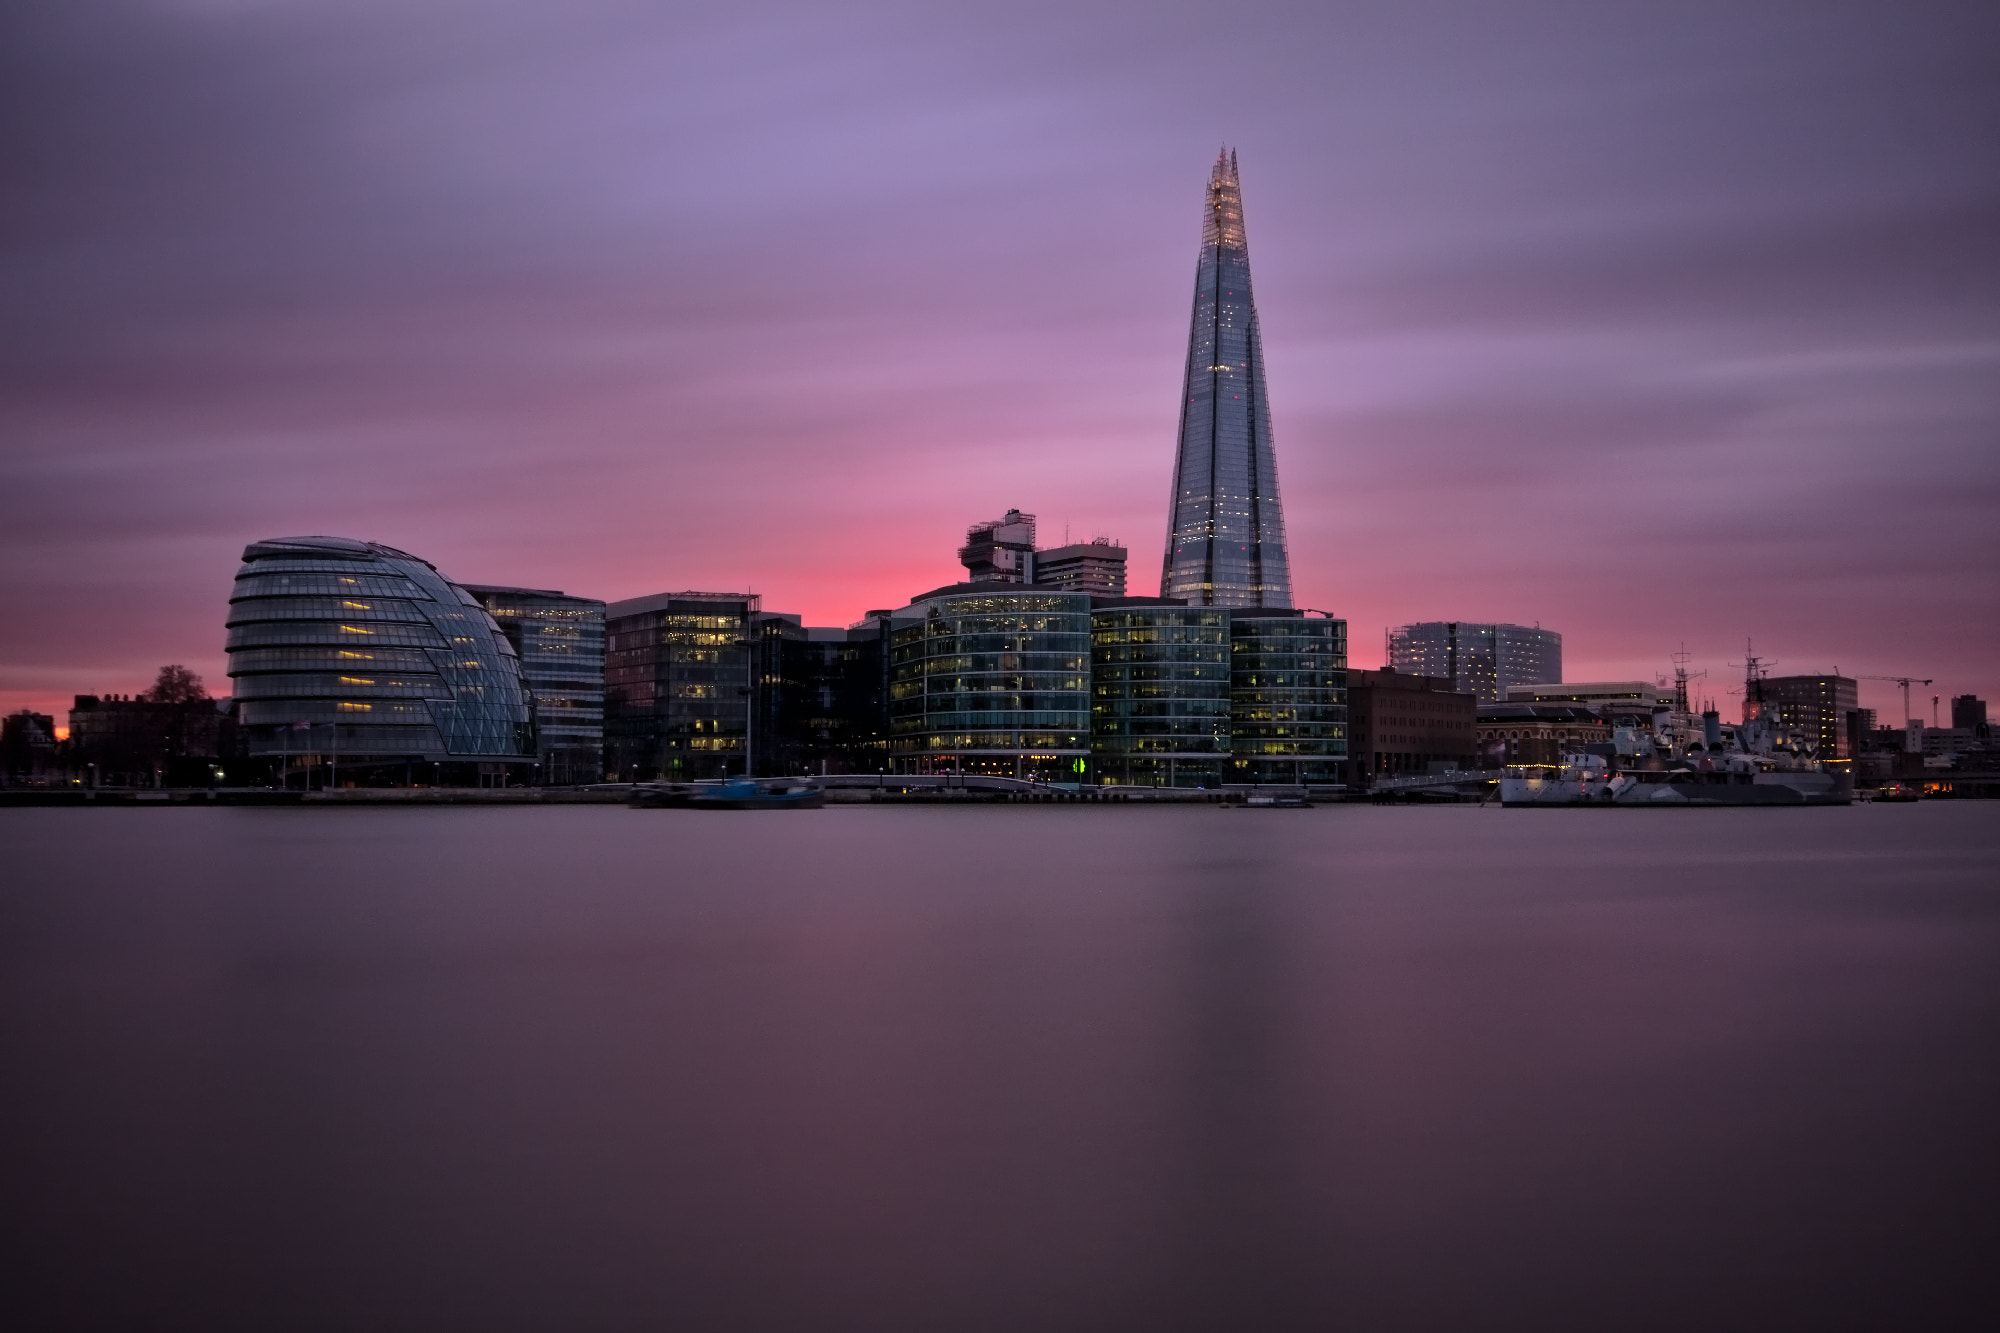 Photograph London at sunset by Karl Batchelor on 500px